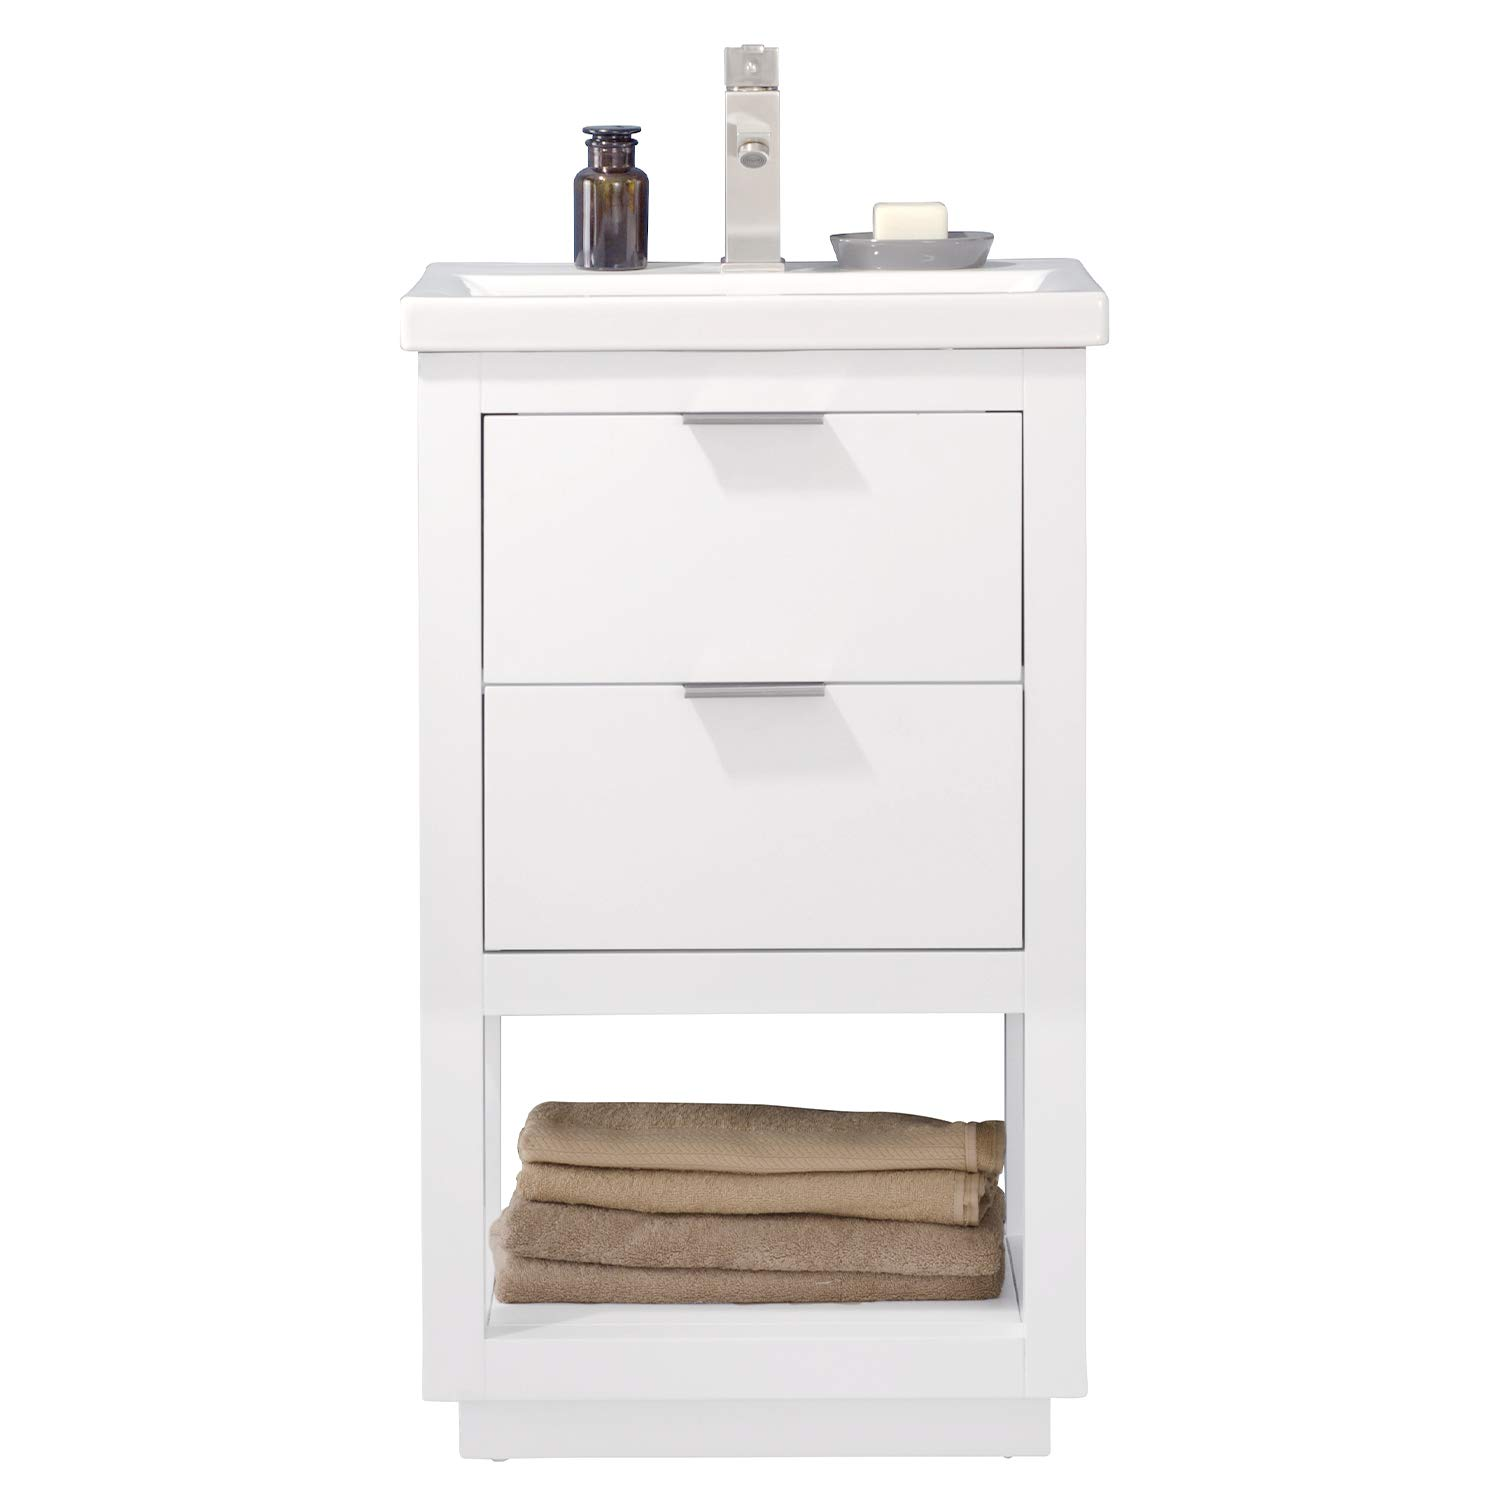 "Luca Kitchen & Bath LC20GWP Sydney 20"" Bathroom Vanity Set in White Made with Hardwood and Integrated Porcelain Top"